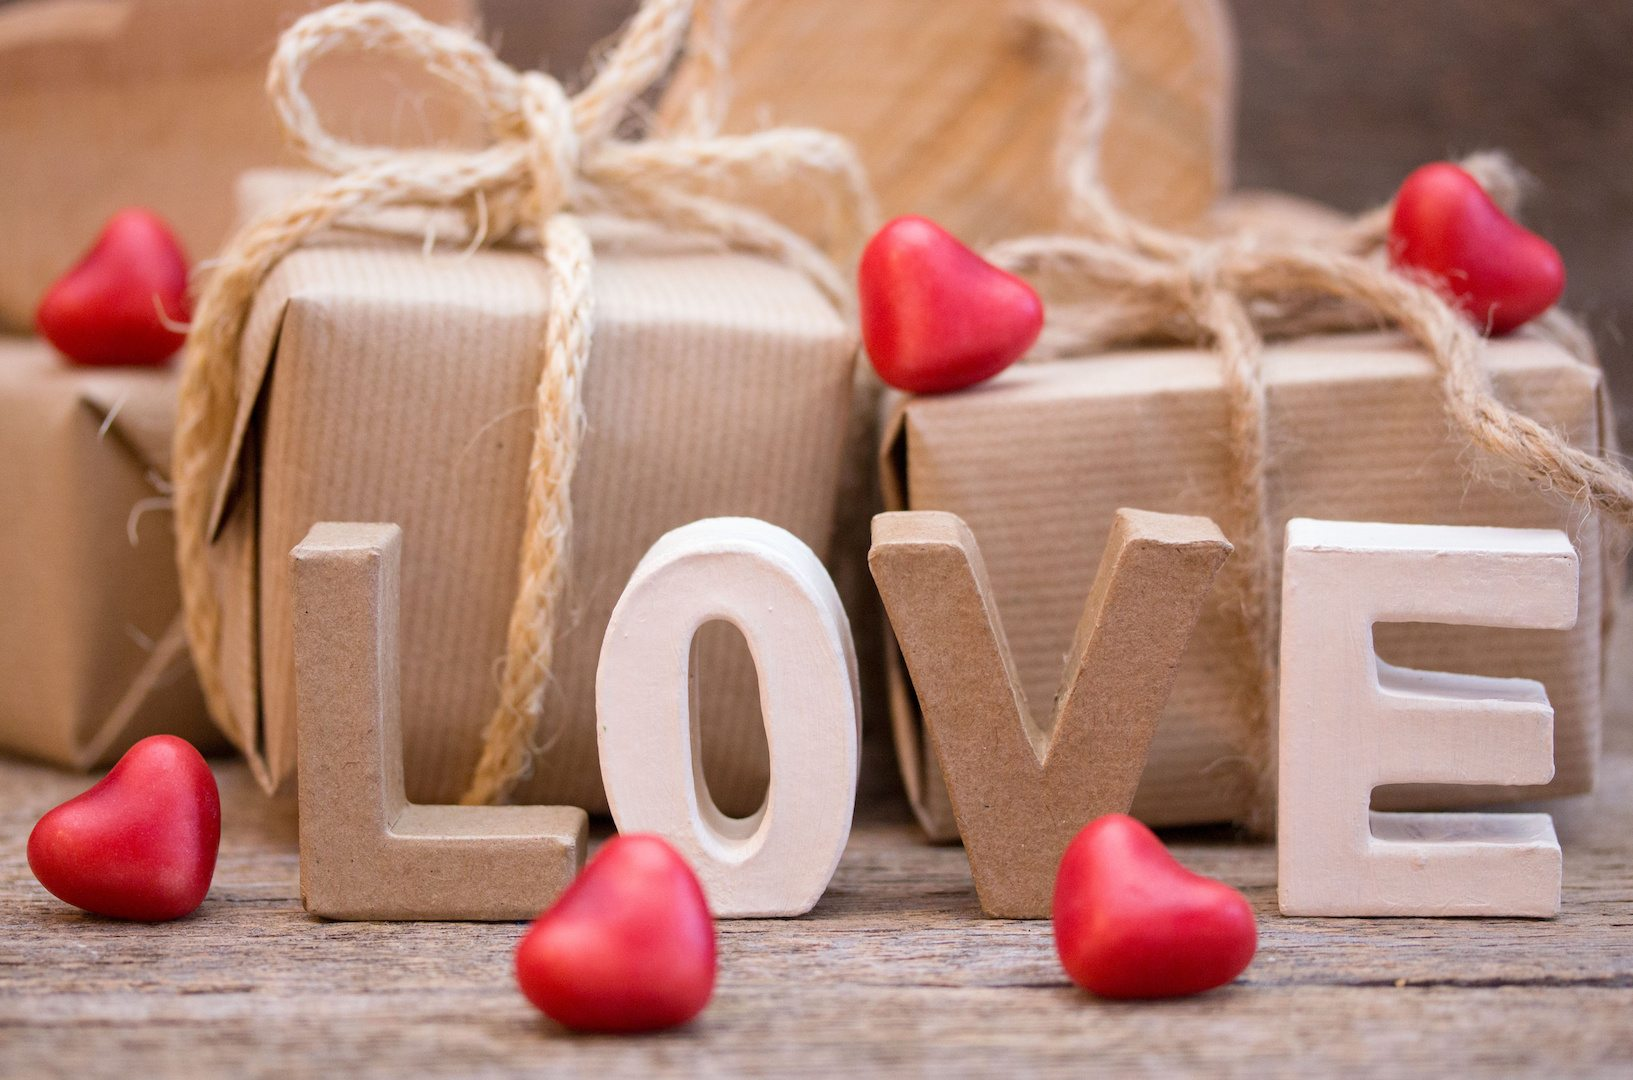 Wedding Gifts For Parents Remarriage : Wedding Gifts That Invest in MarriagesMarriage Missions ...